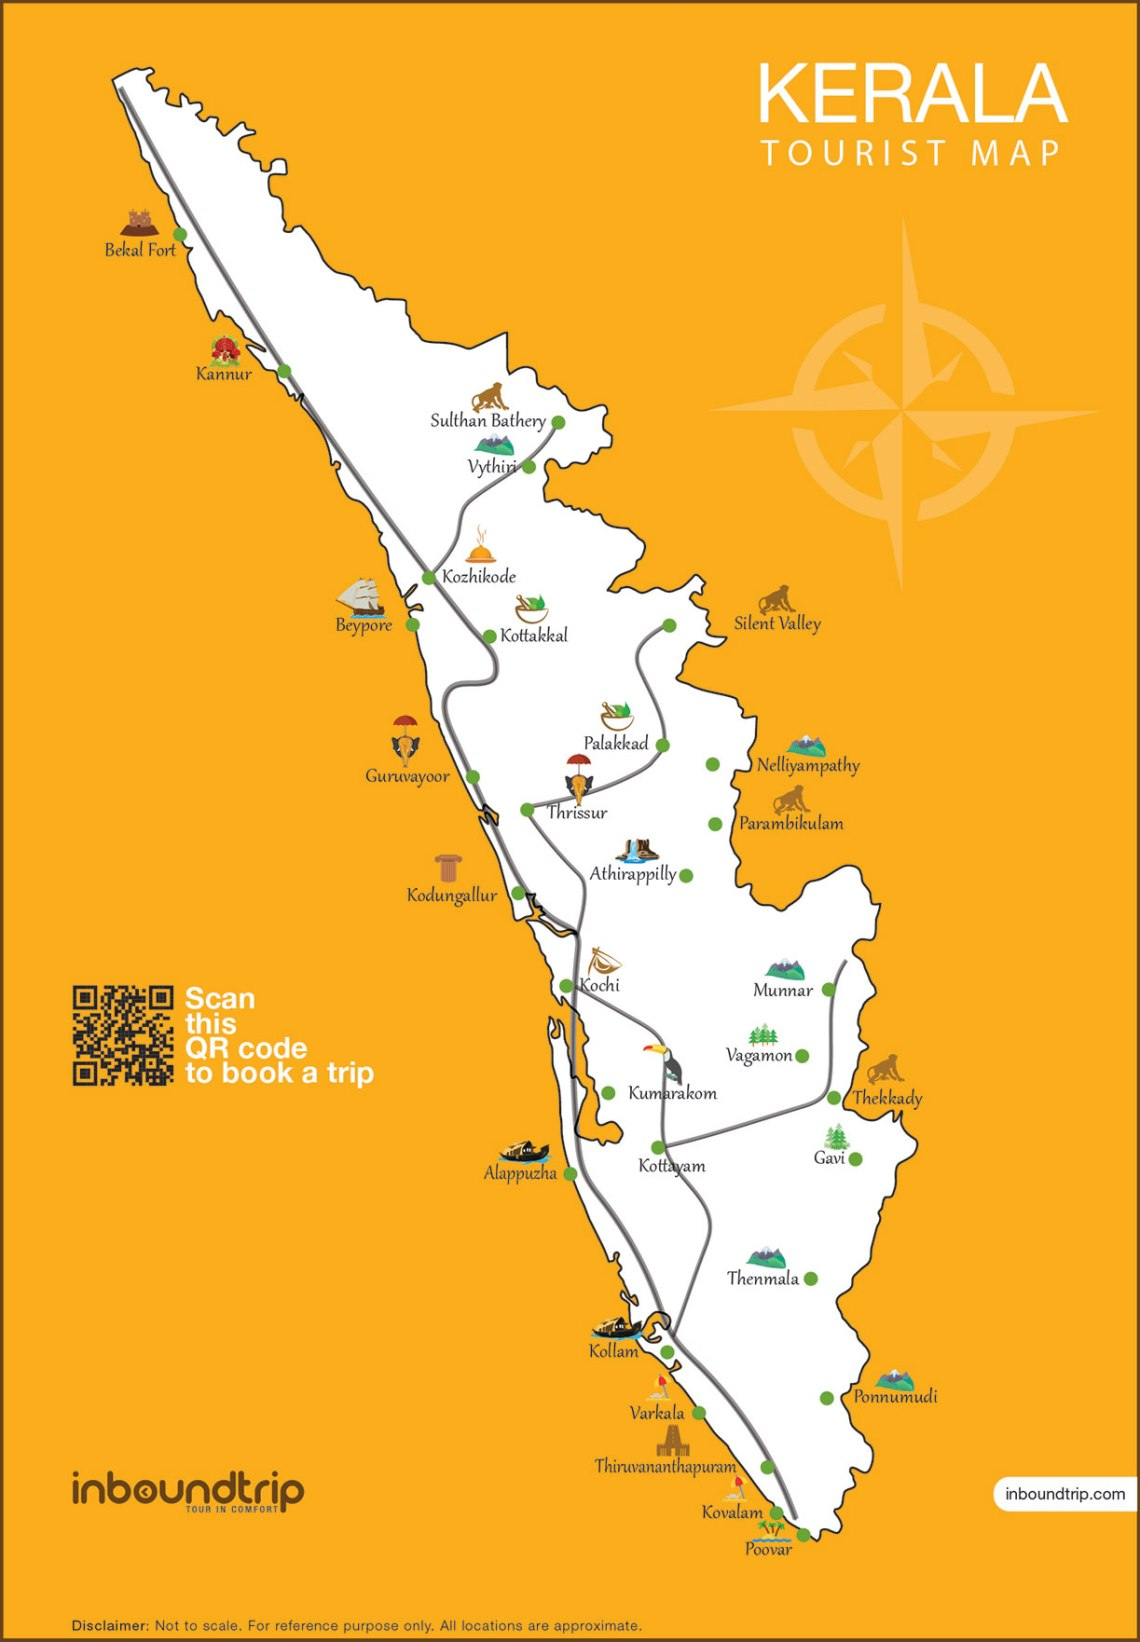 Kerala-Tourist-Map